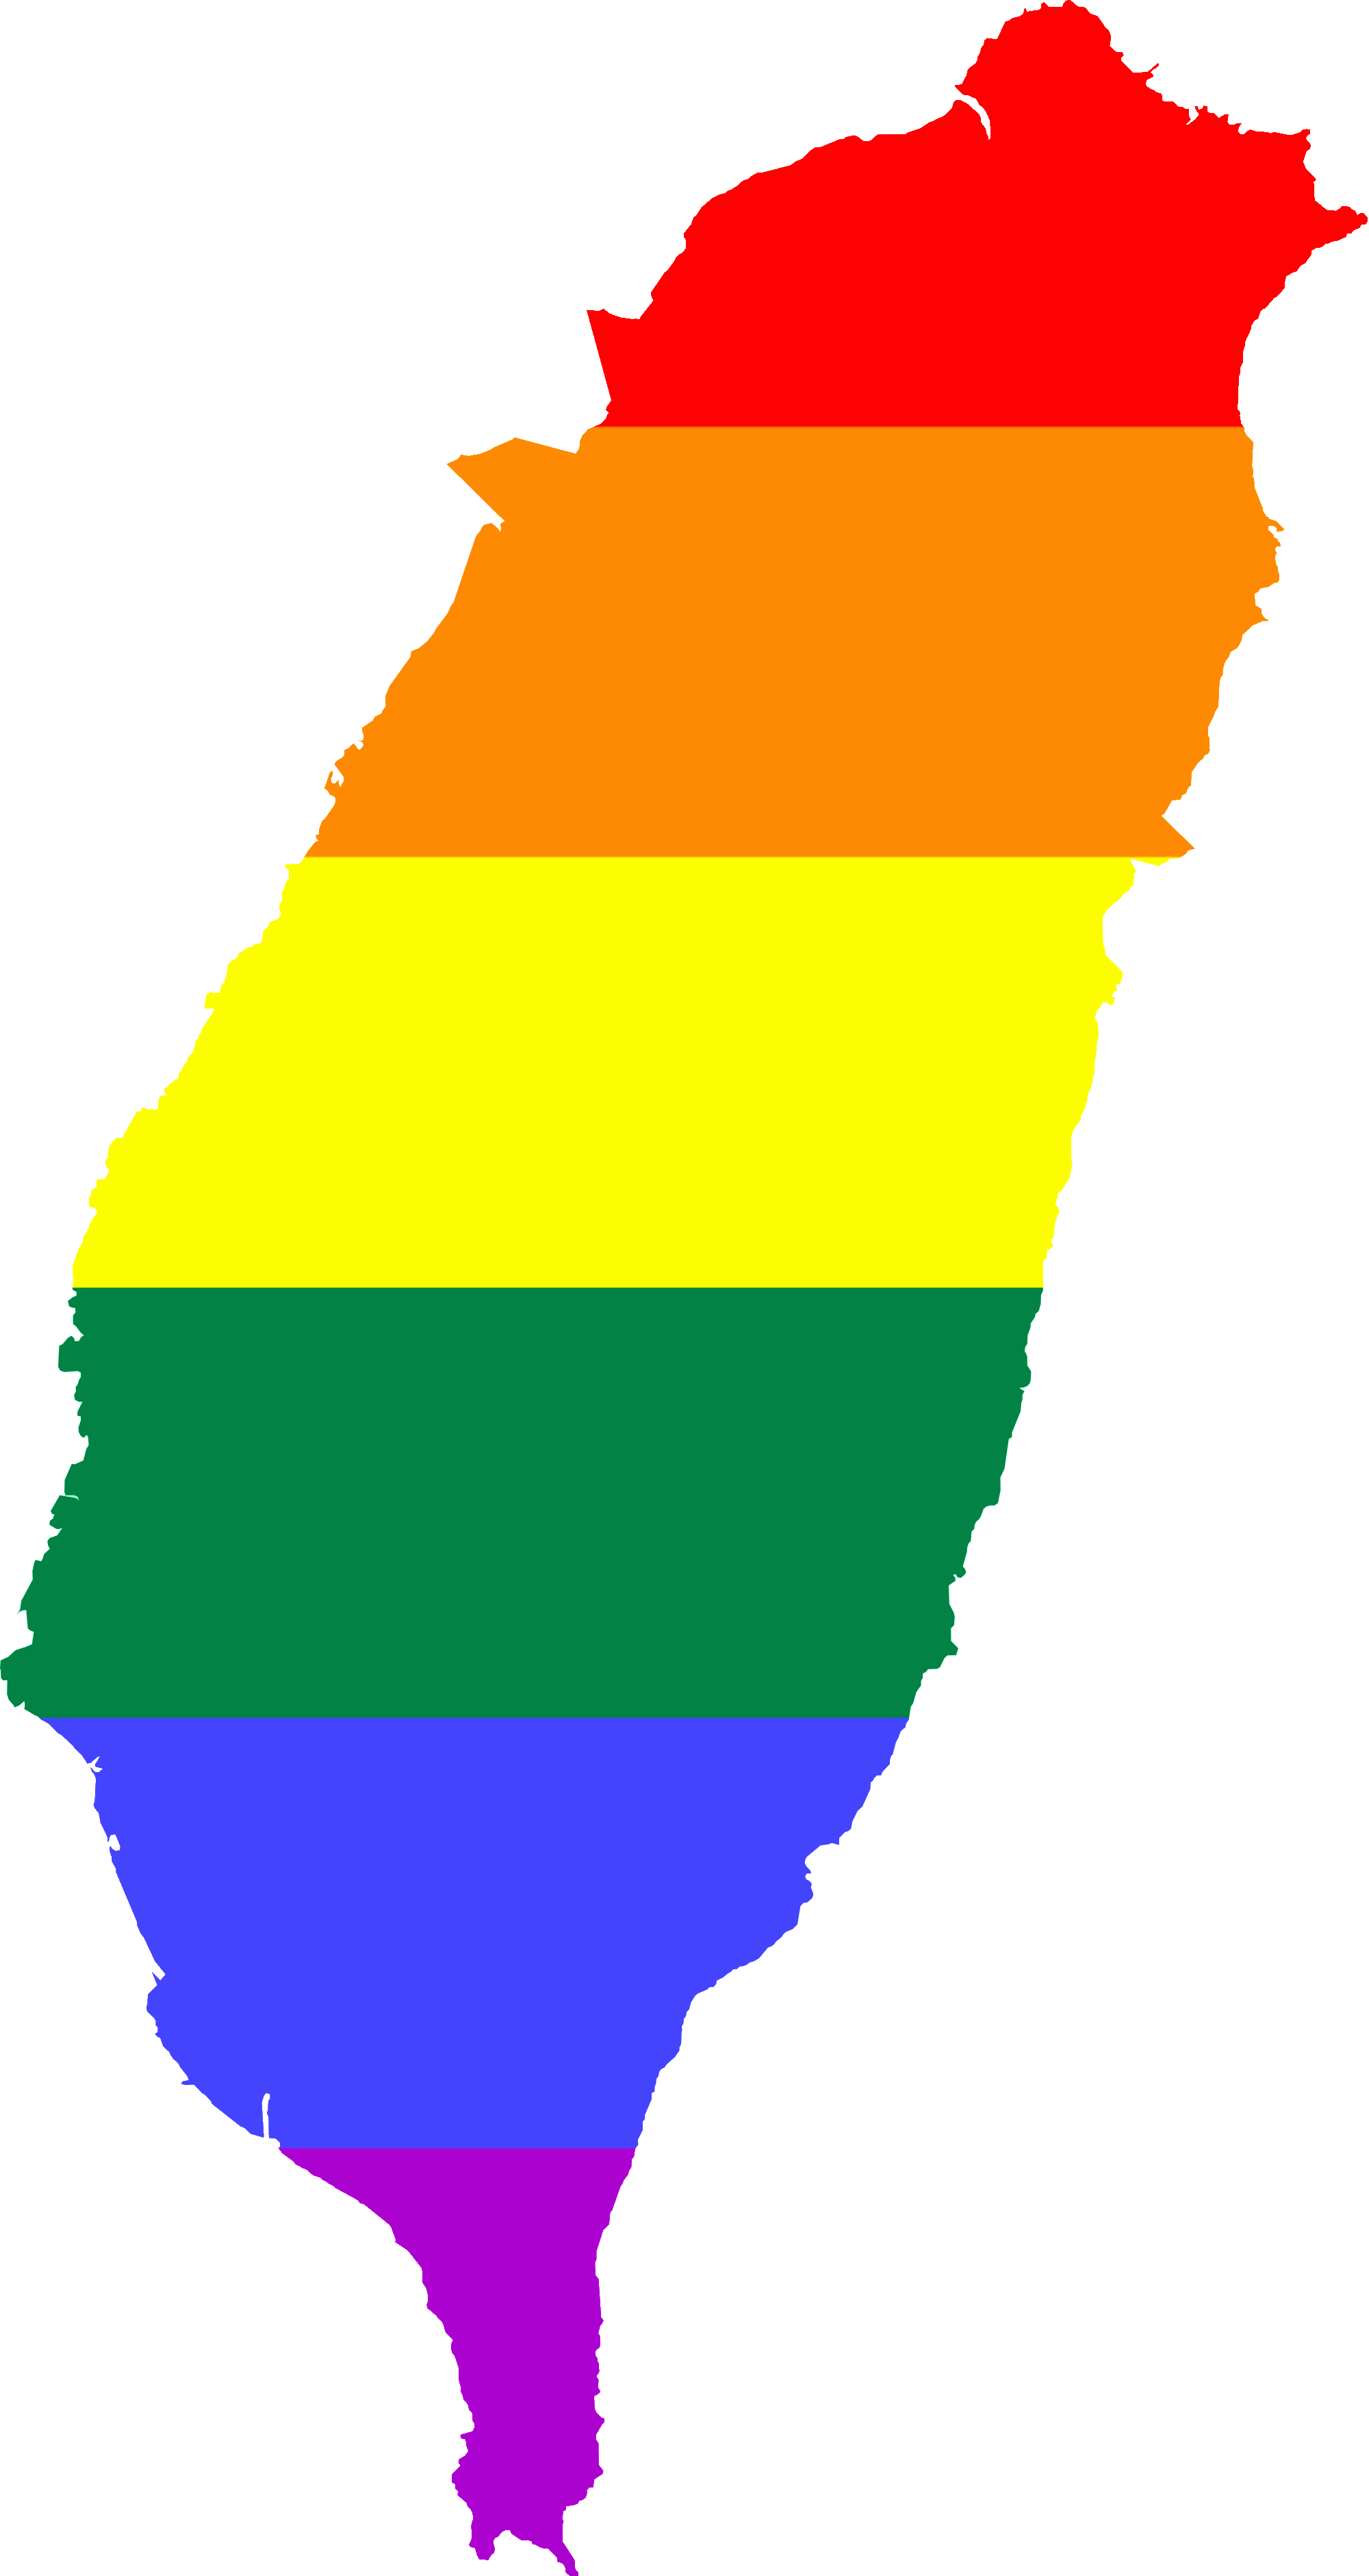 File:LGBT Flag map of Taiwan (ROC).png.